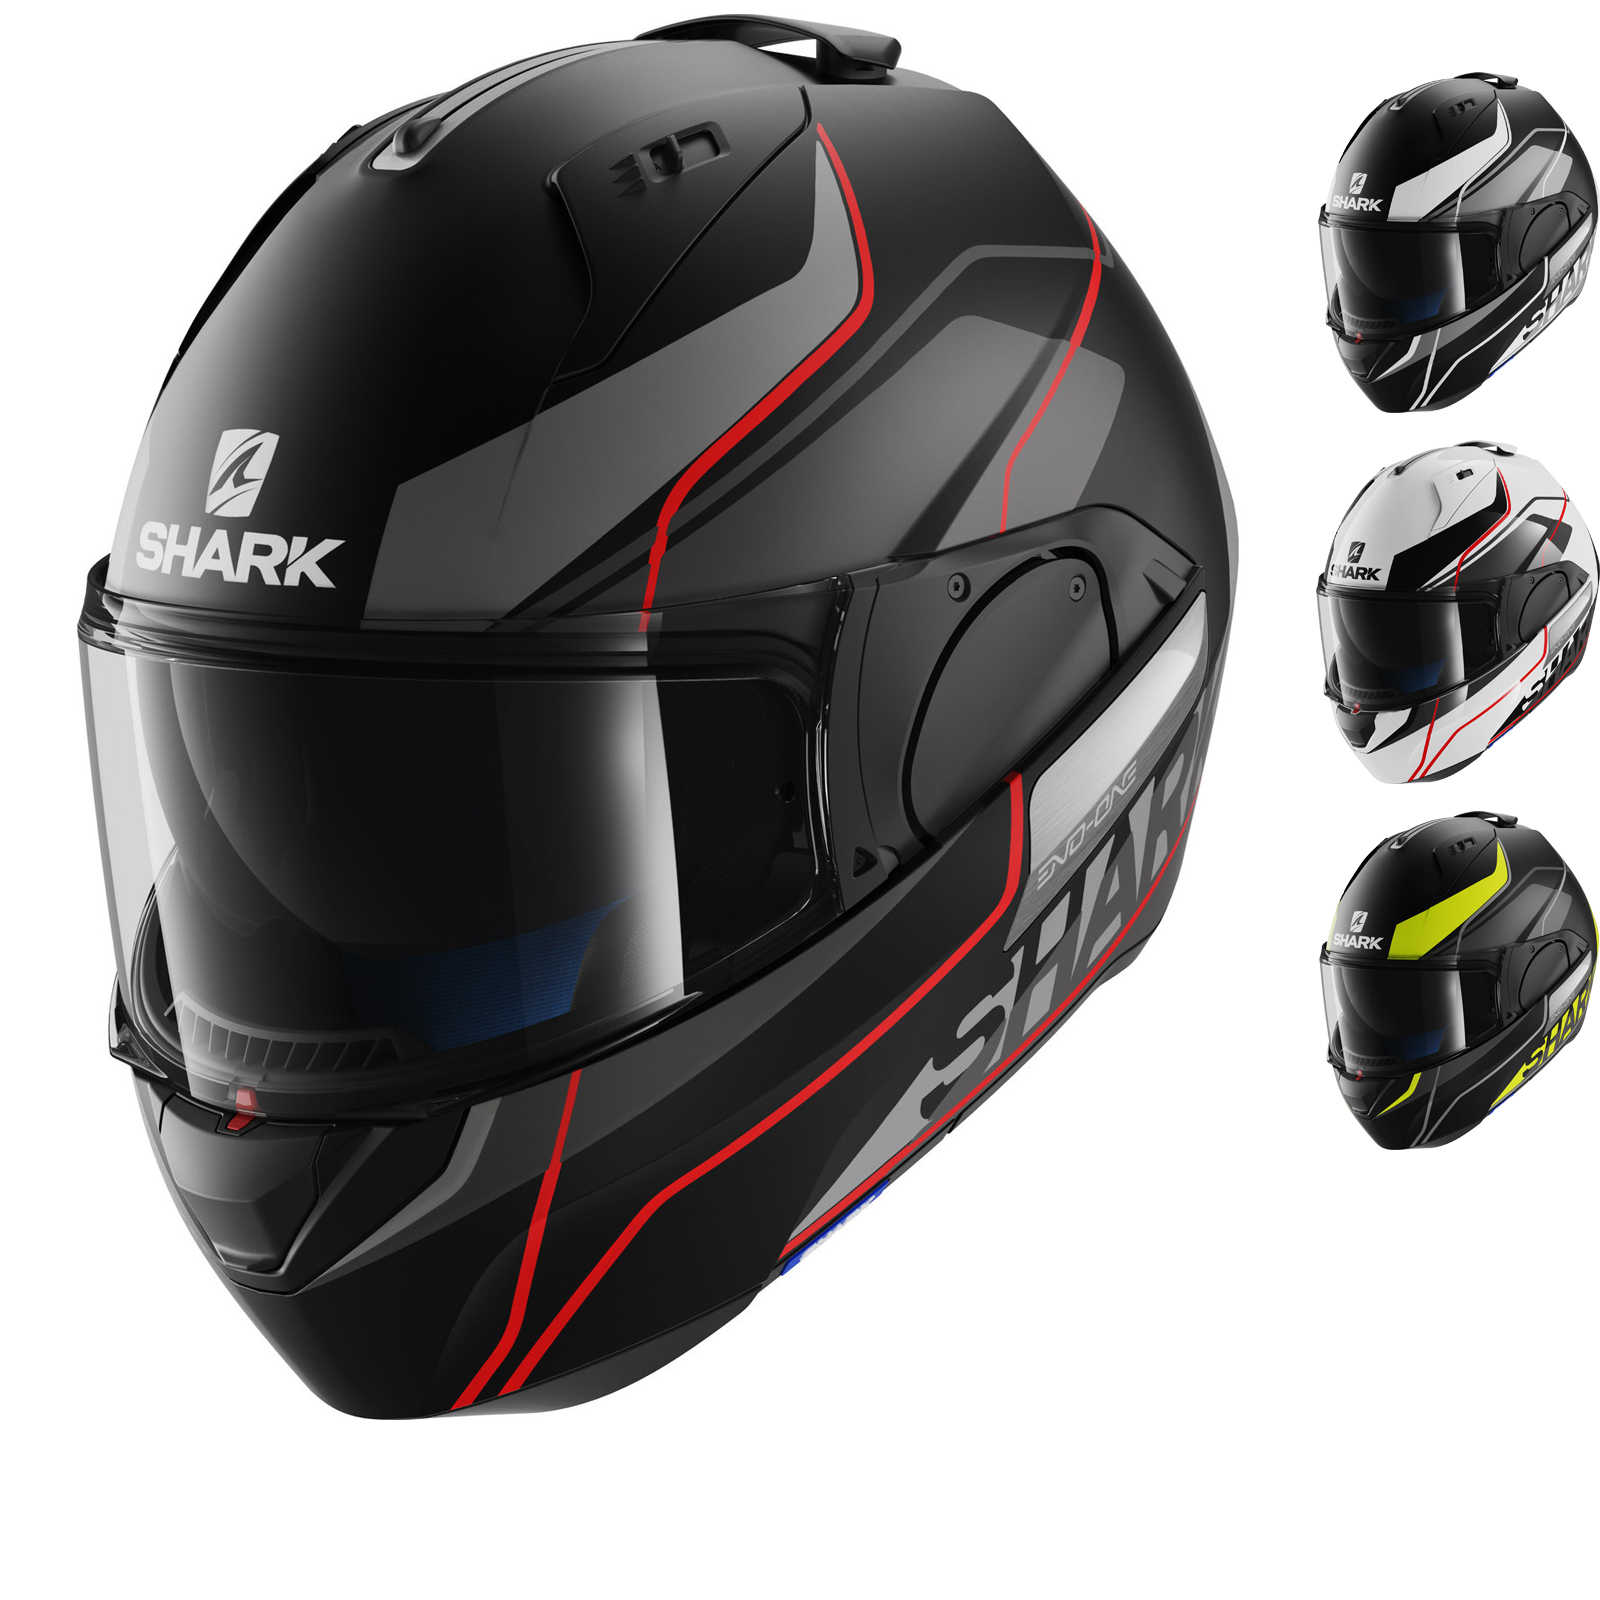 shark evo one krono flip front motorcycle helmet christmas gifts for bikers. Black Bedroom Furniture Sets. Home Design Ideas